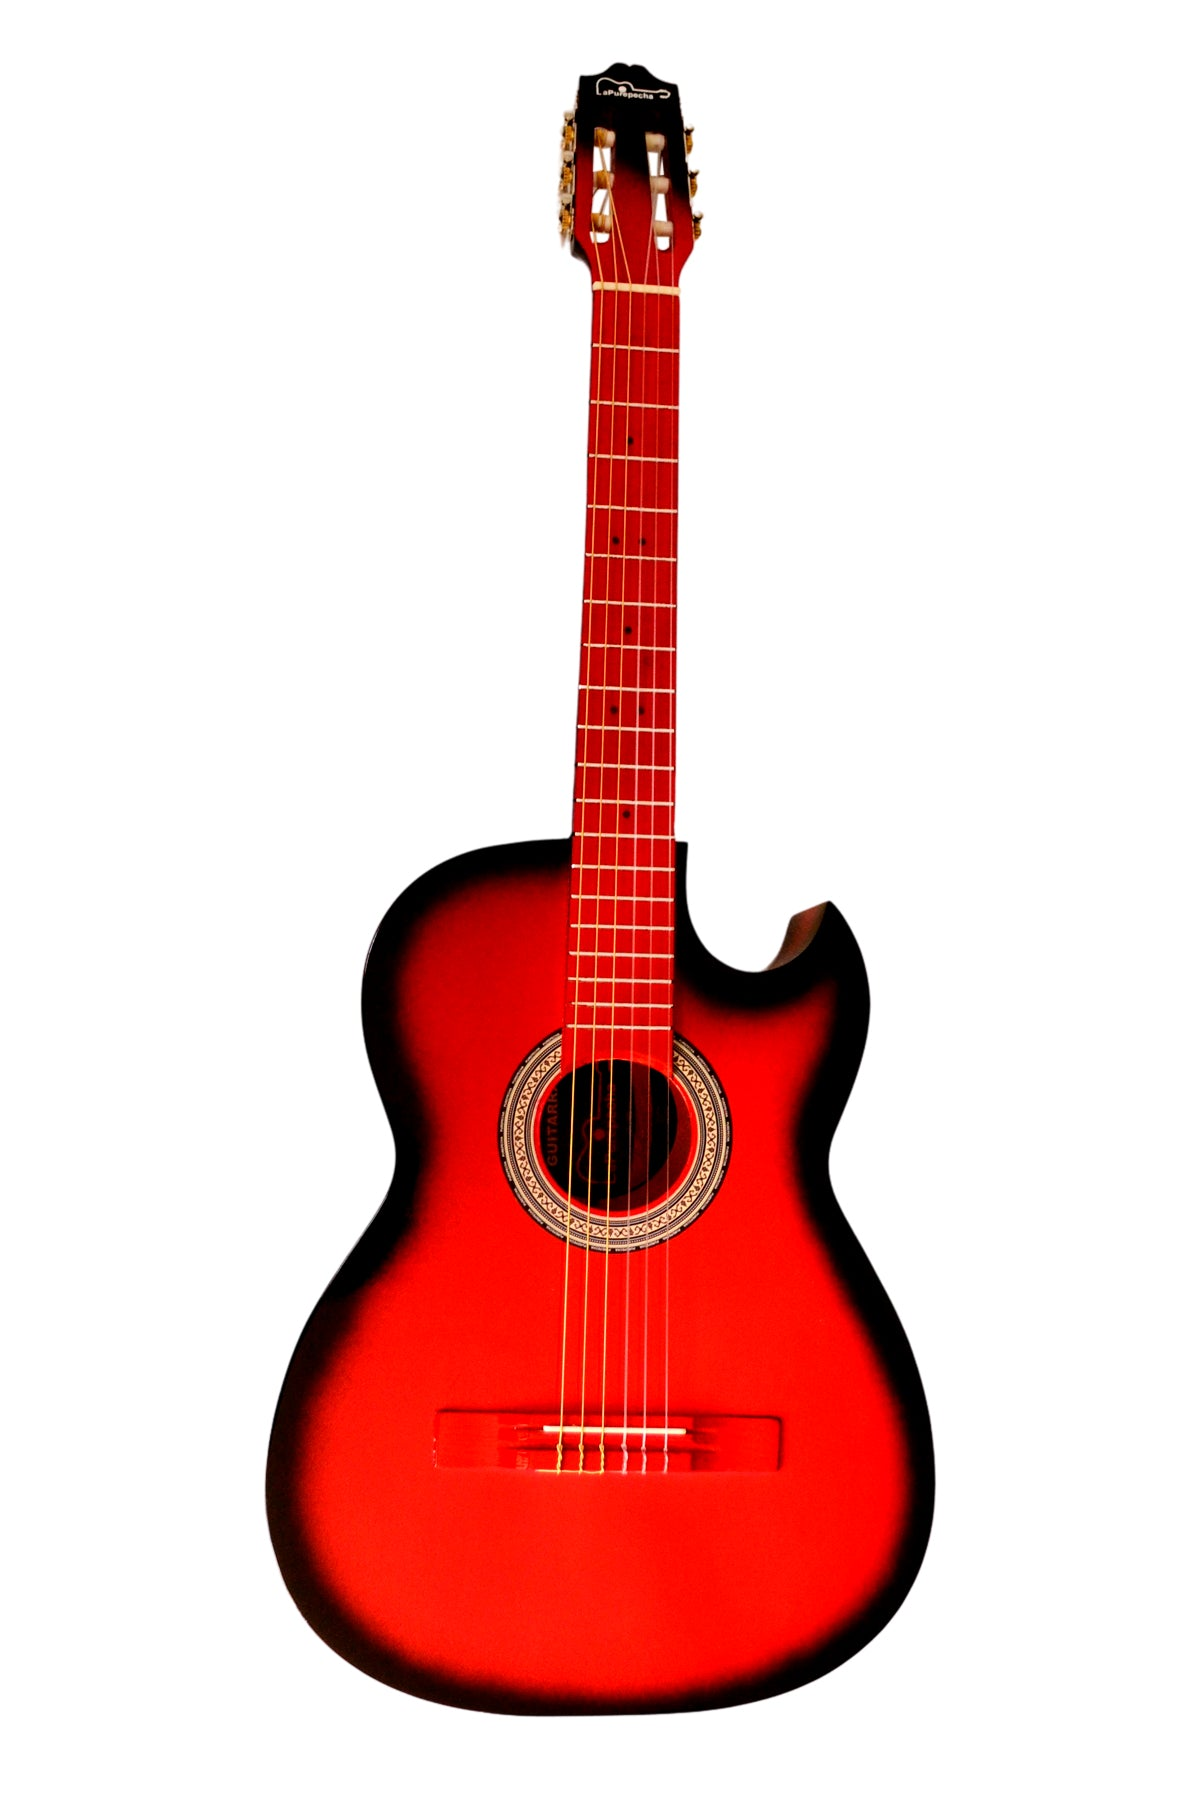 Guitarra resaque